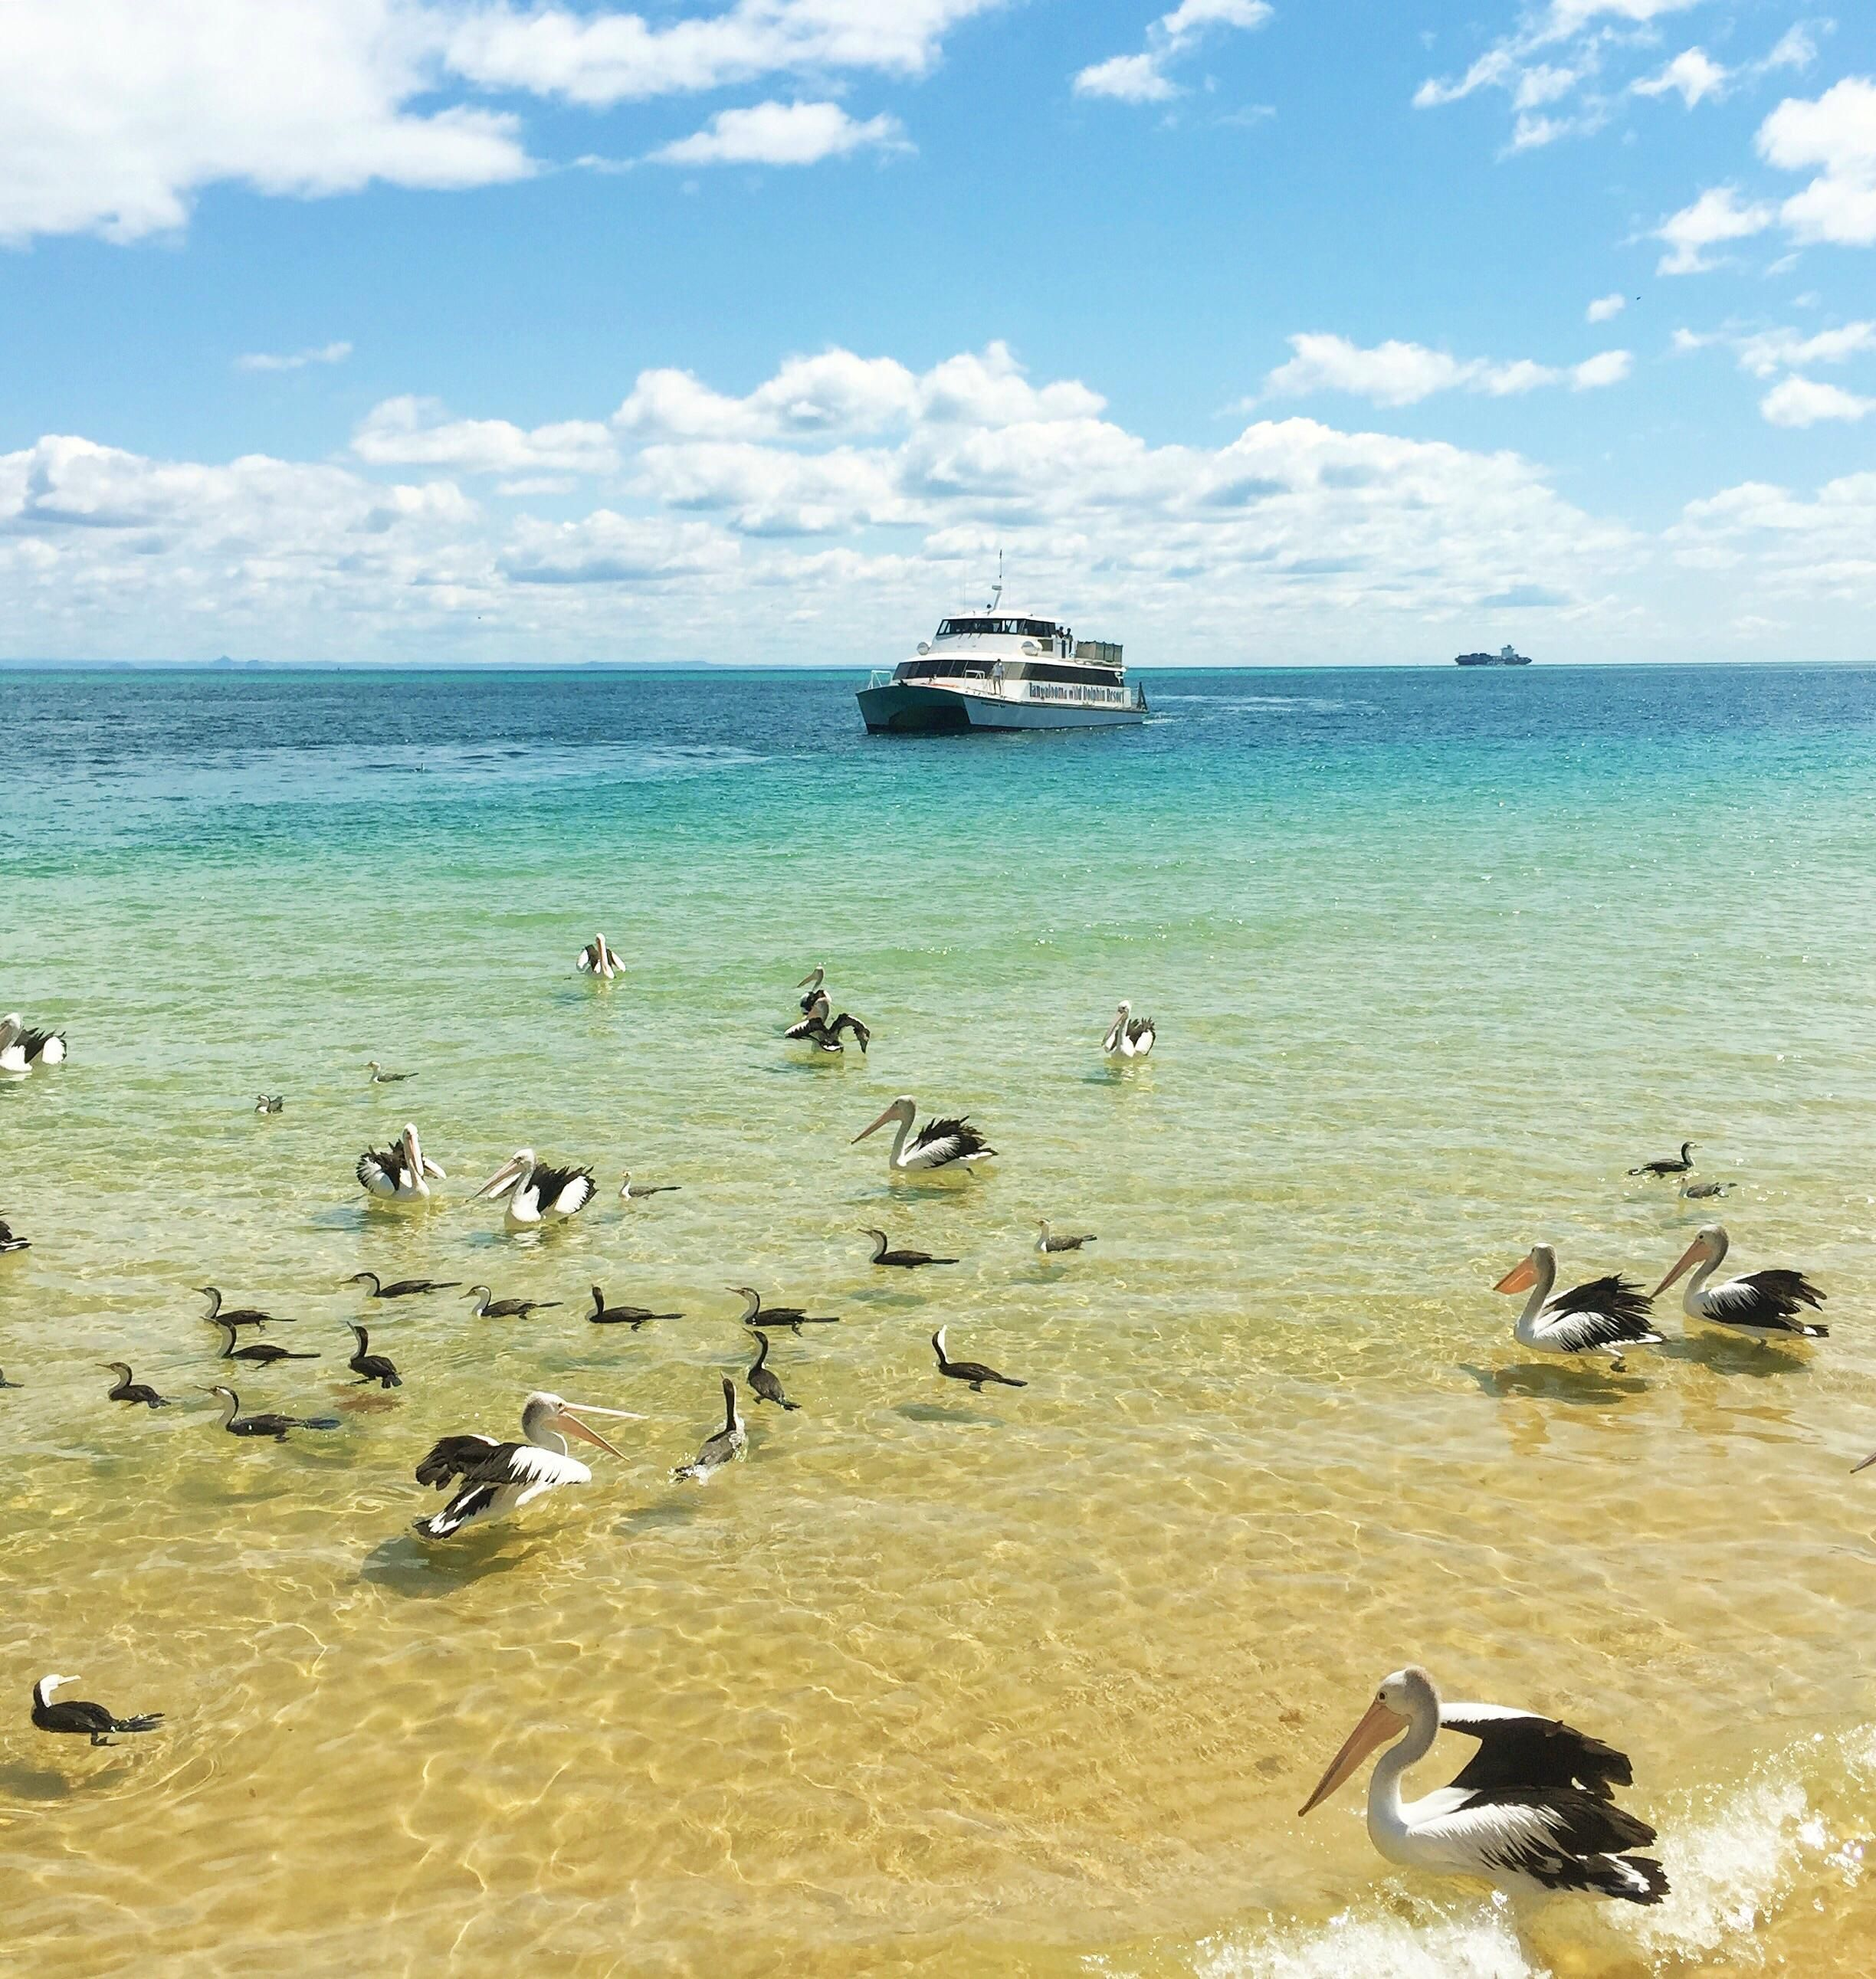 Tangalooma Island Queensland Australia. Loved this place! An old picture but thought of sharing it with you guys. #travel #ttot #nature #photo #vacation #Hotel #adventure #landscape http://bit.ly/2o9IWvs